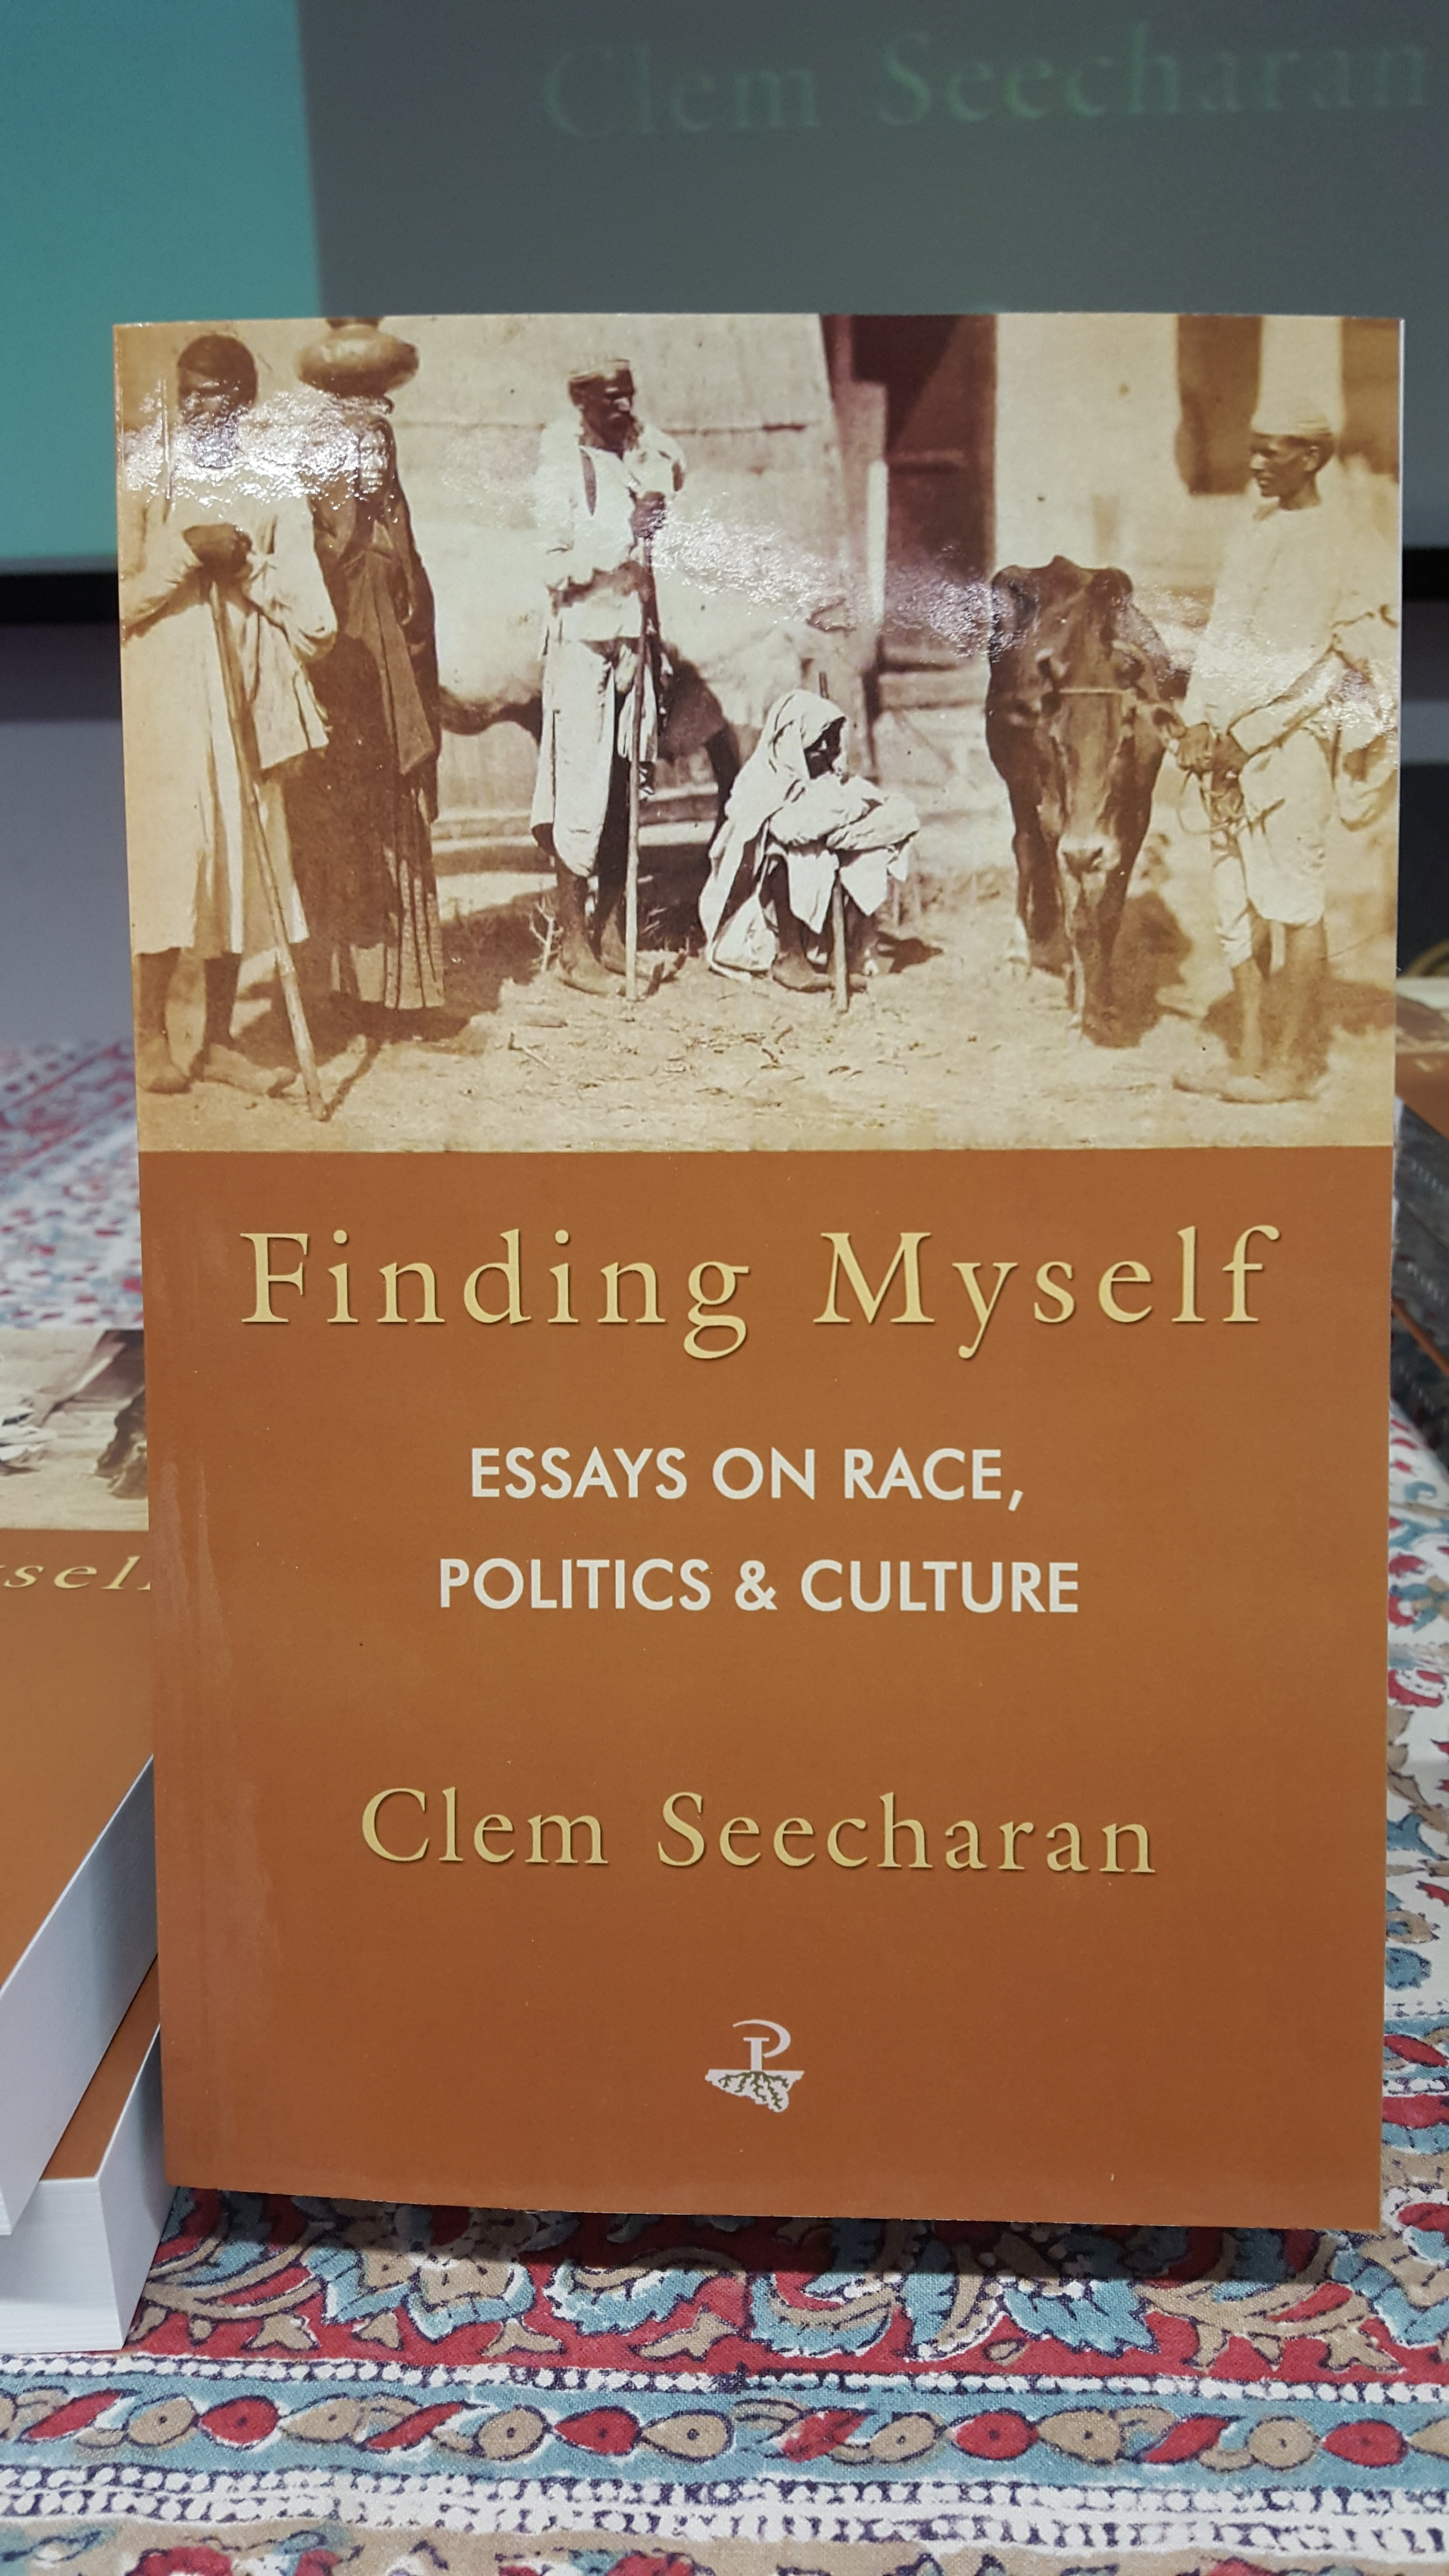 English Essay Story Finding Myself Essays On Race Politics And Culture  New Book By Clem  Seecharan  Indie Publisher  Greater London  Way Wive Wordz Essay Paper also Small Essays In English Finding Myself Essays On Race Politics And Culture  New Book By  Research Paper Essay Topics